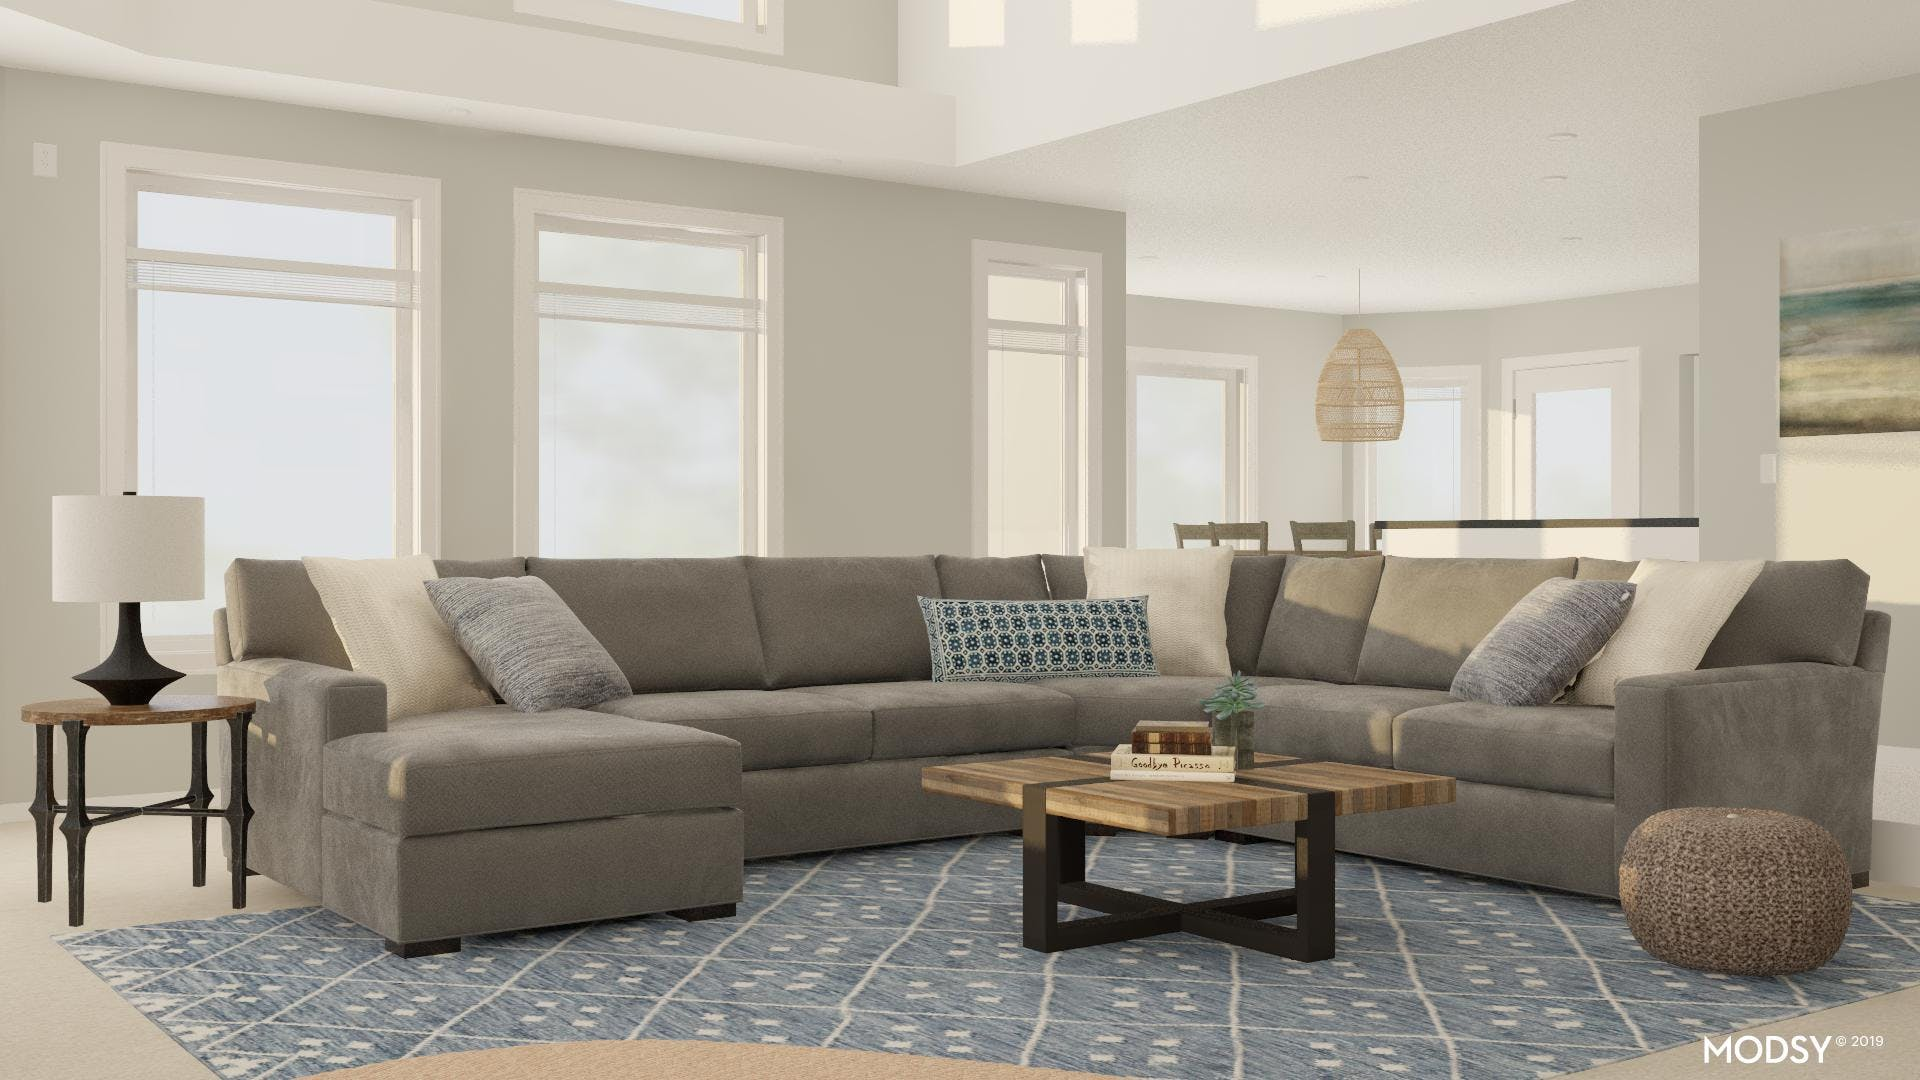 Layout Solutions: A Spacious Living Room